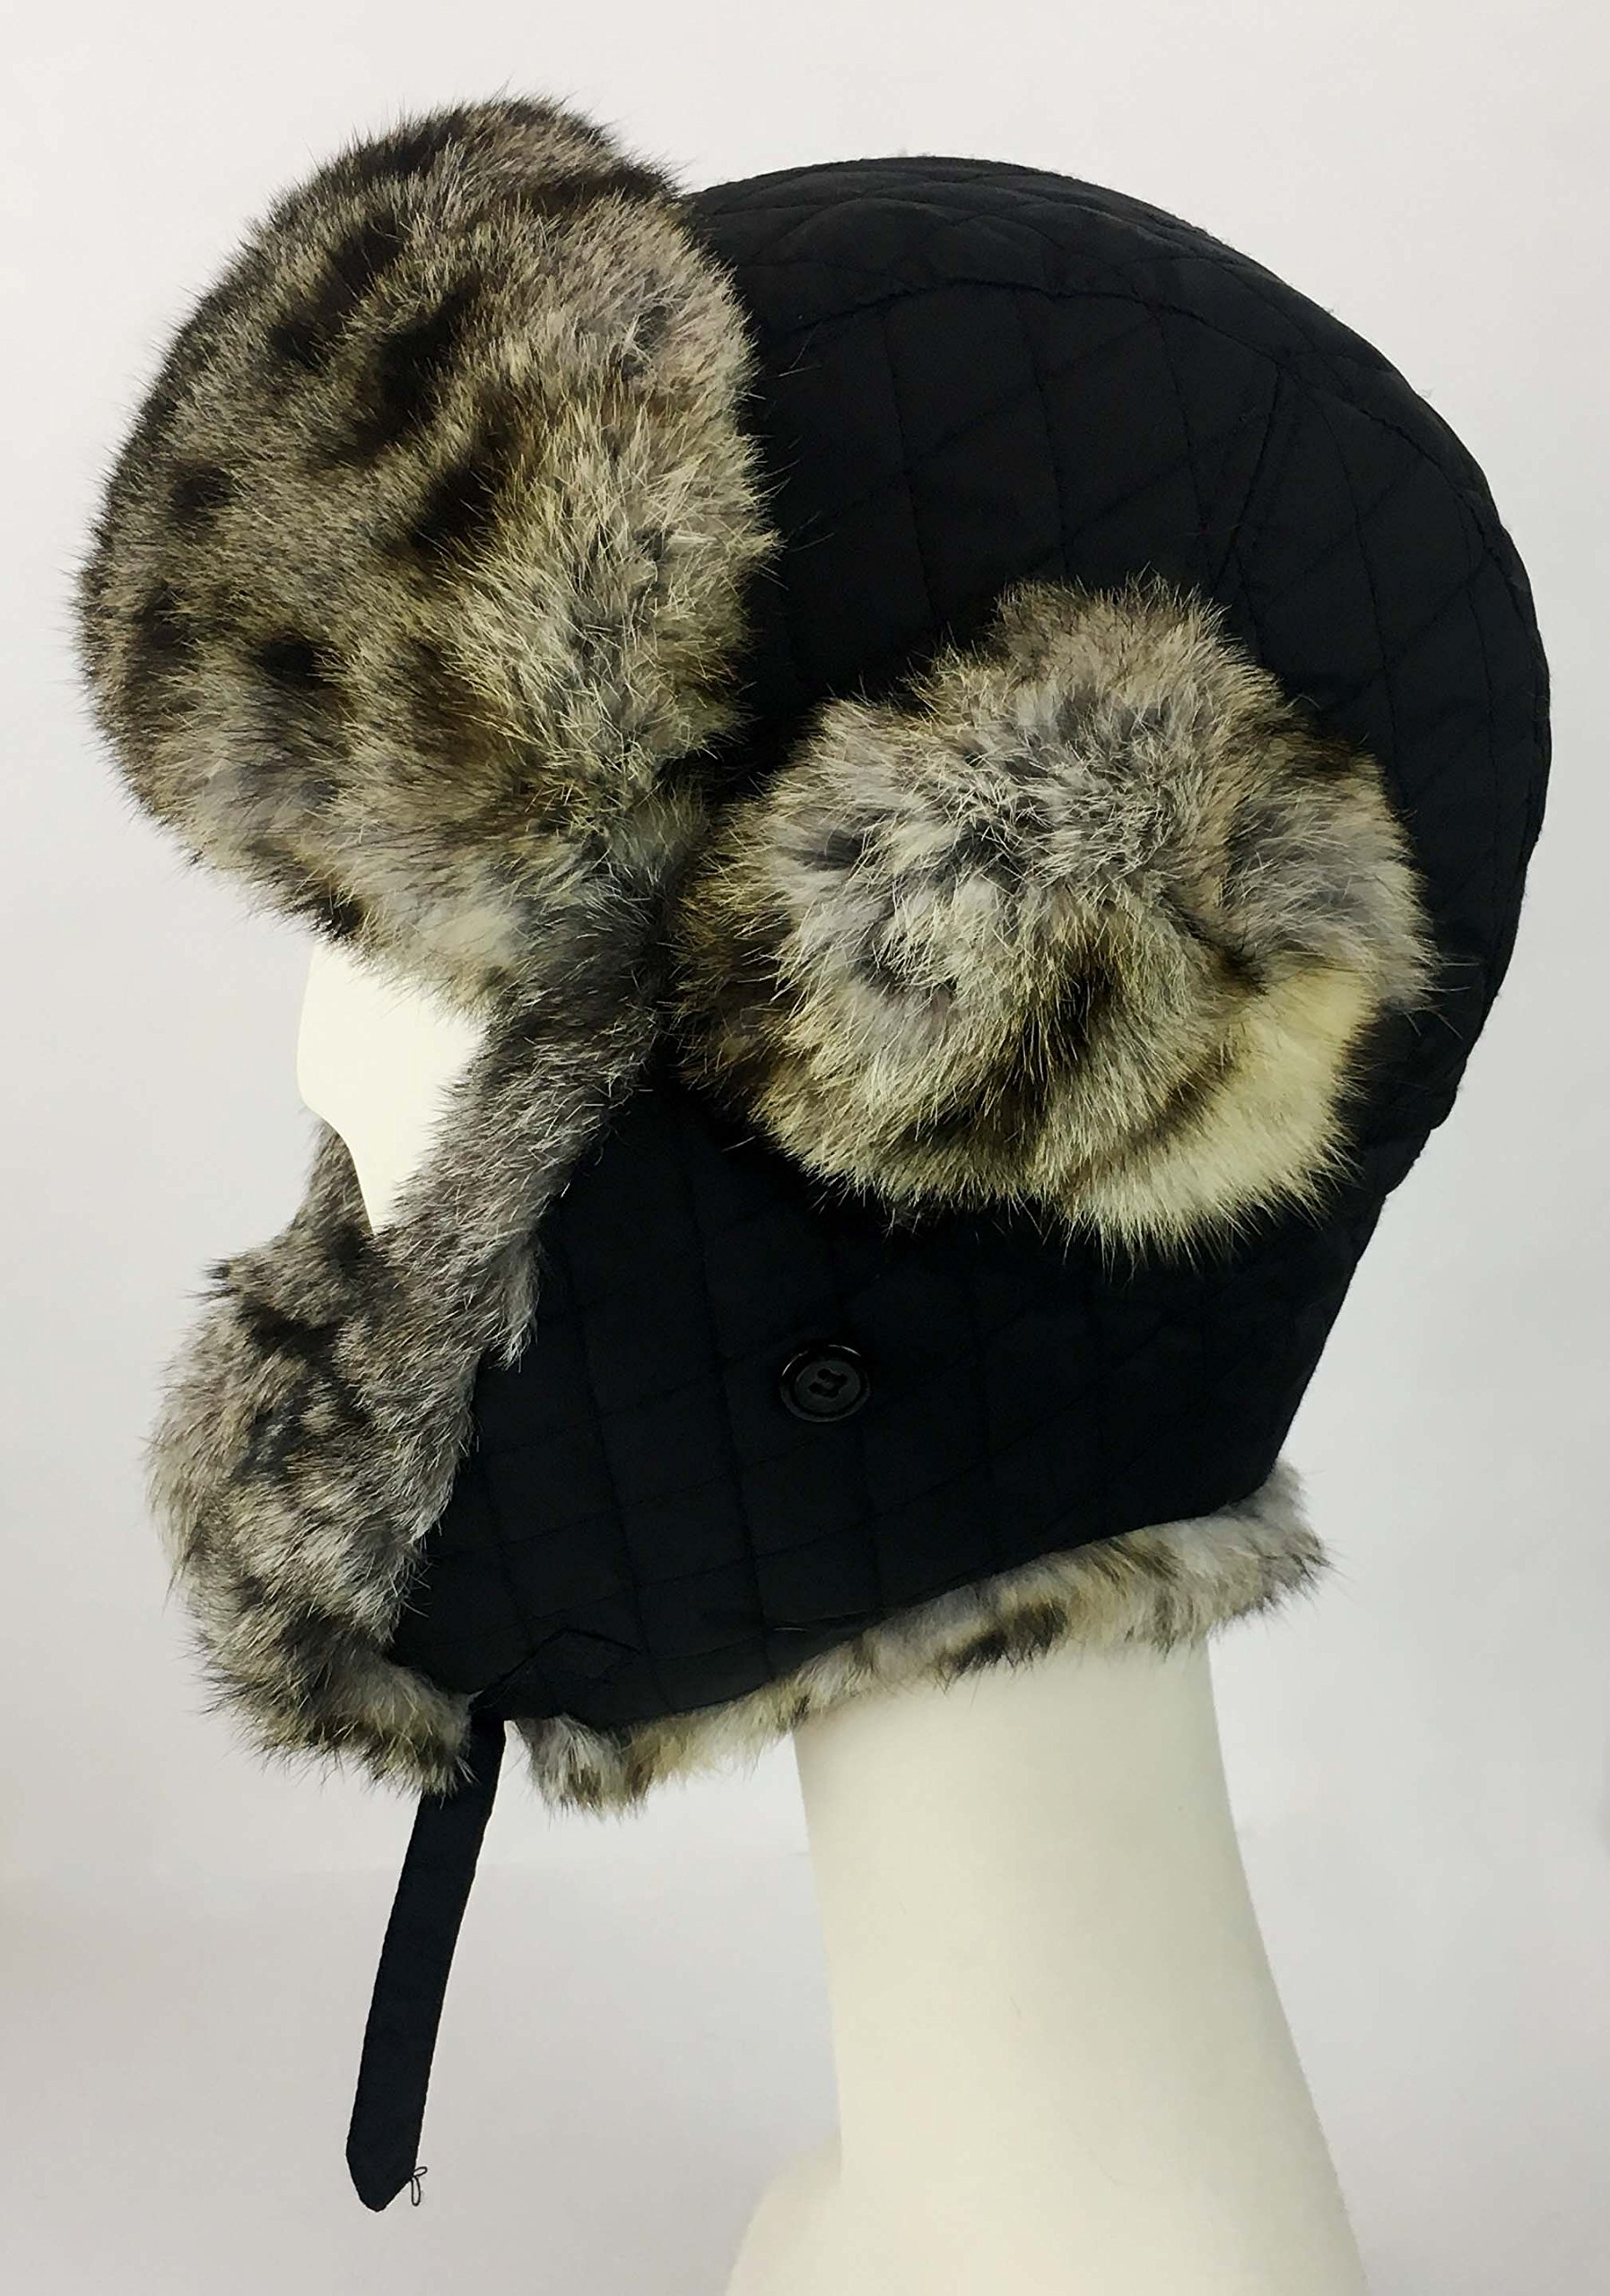 surell Trapper Aviator Hat with Rabbit Fur Trim - Warm Bomber Trooper Hat - Perfect Winter Luxury Gift (Leopard) by surell (Image #3)